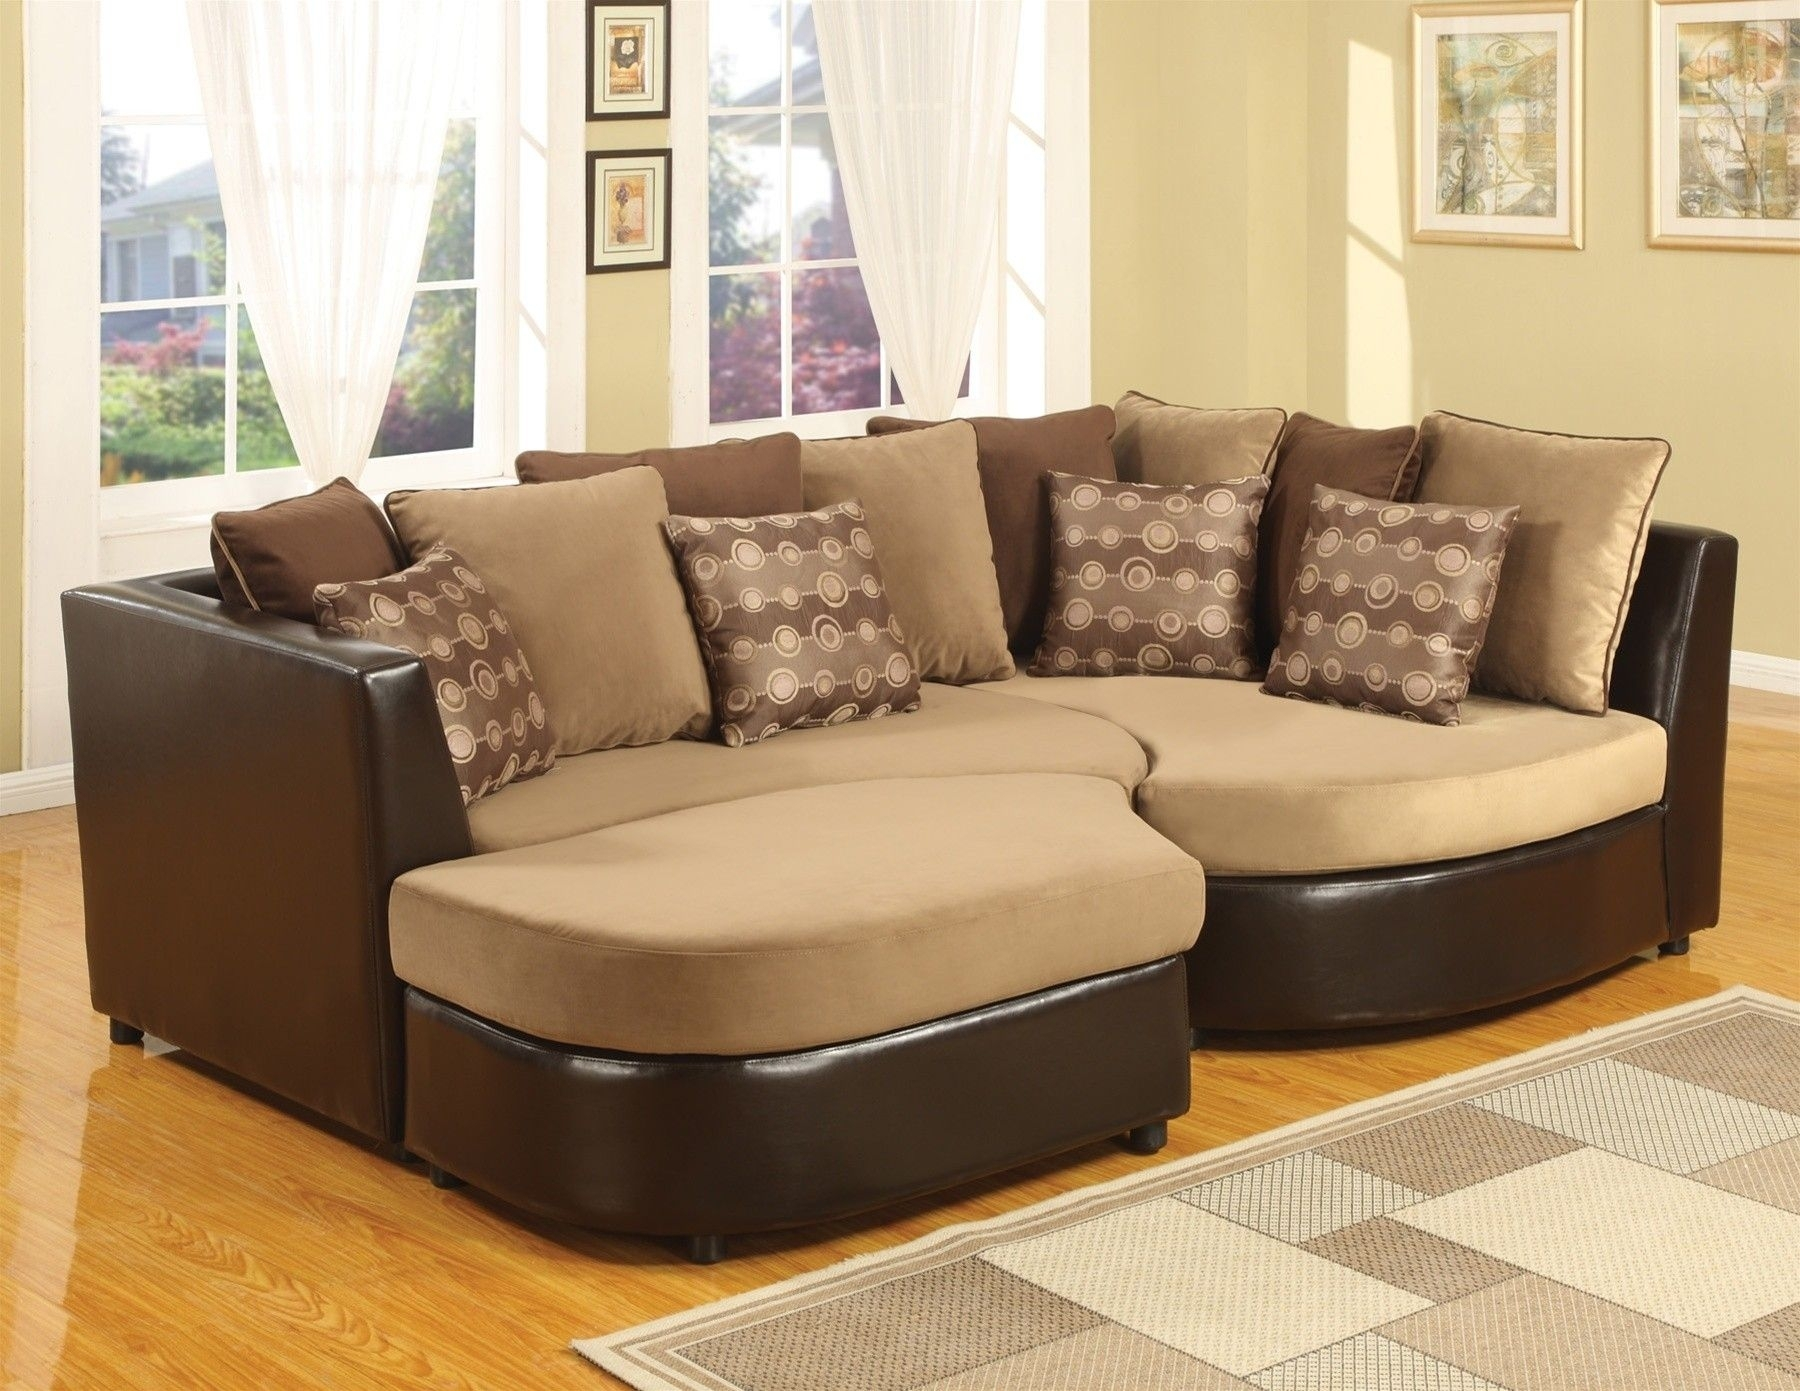 4 Piece Sectional Puzzle Sofa | Http://ml2R | Pinterest | House With Macon Ga Sectional Sofas (Image 1 of 10)